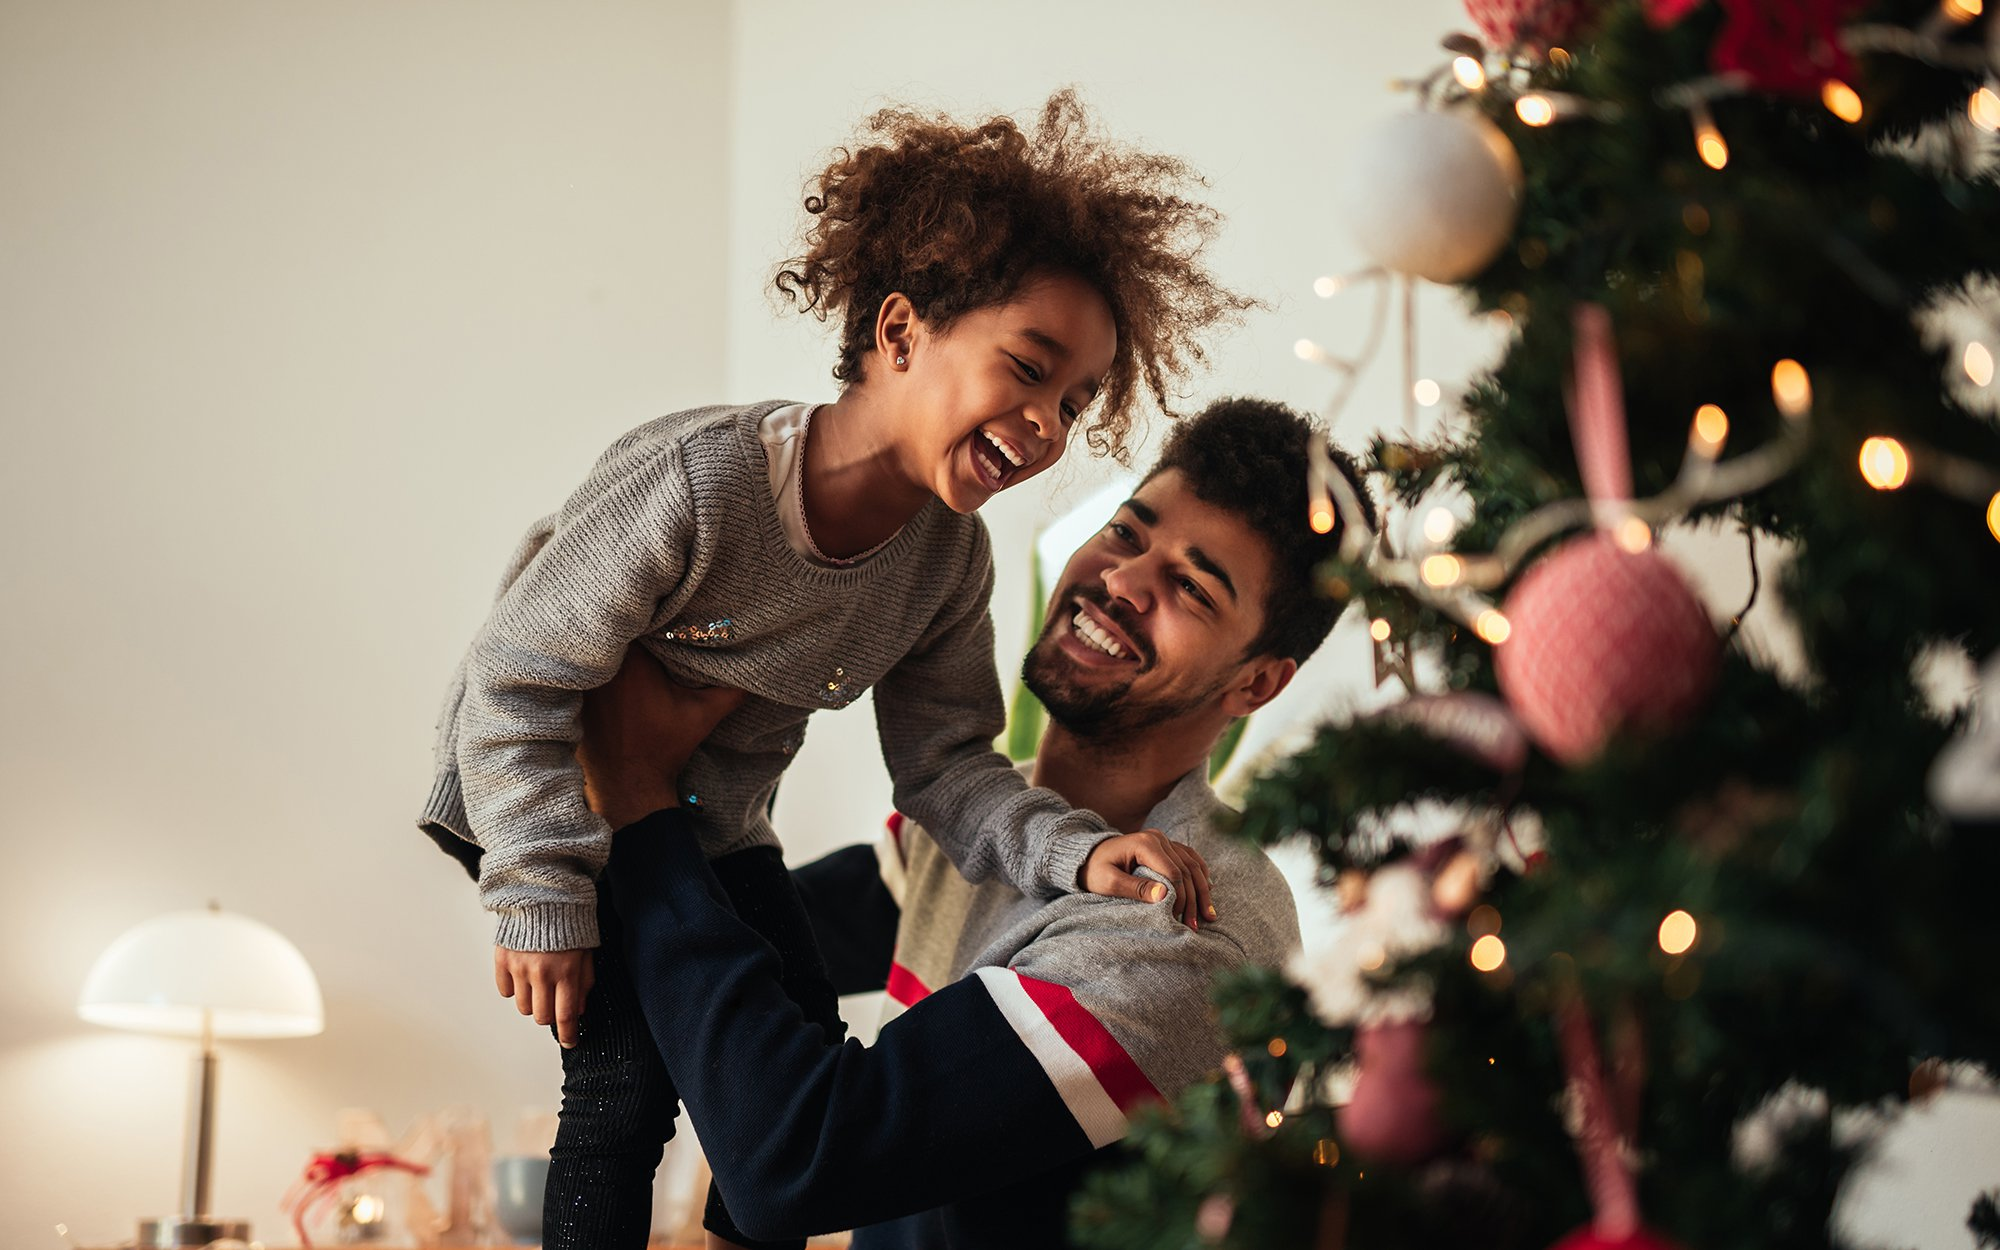 Top 12 Holiday Decorating Safety Tips | One Medical